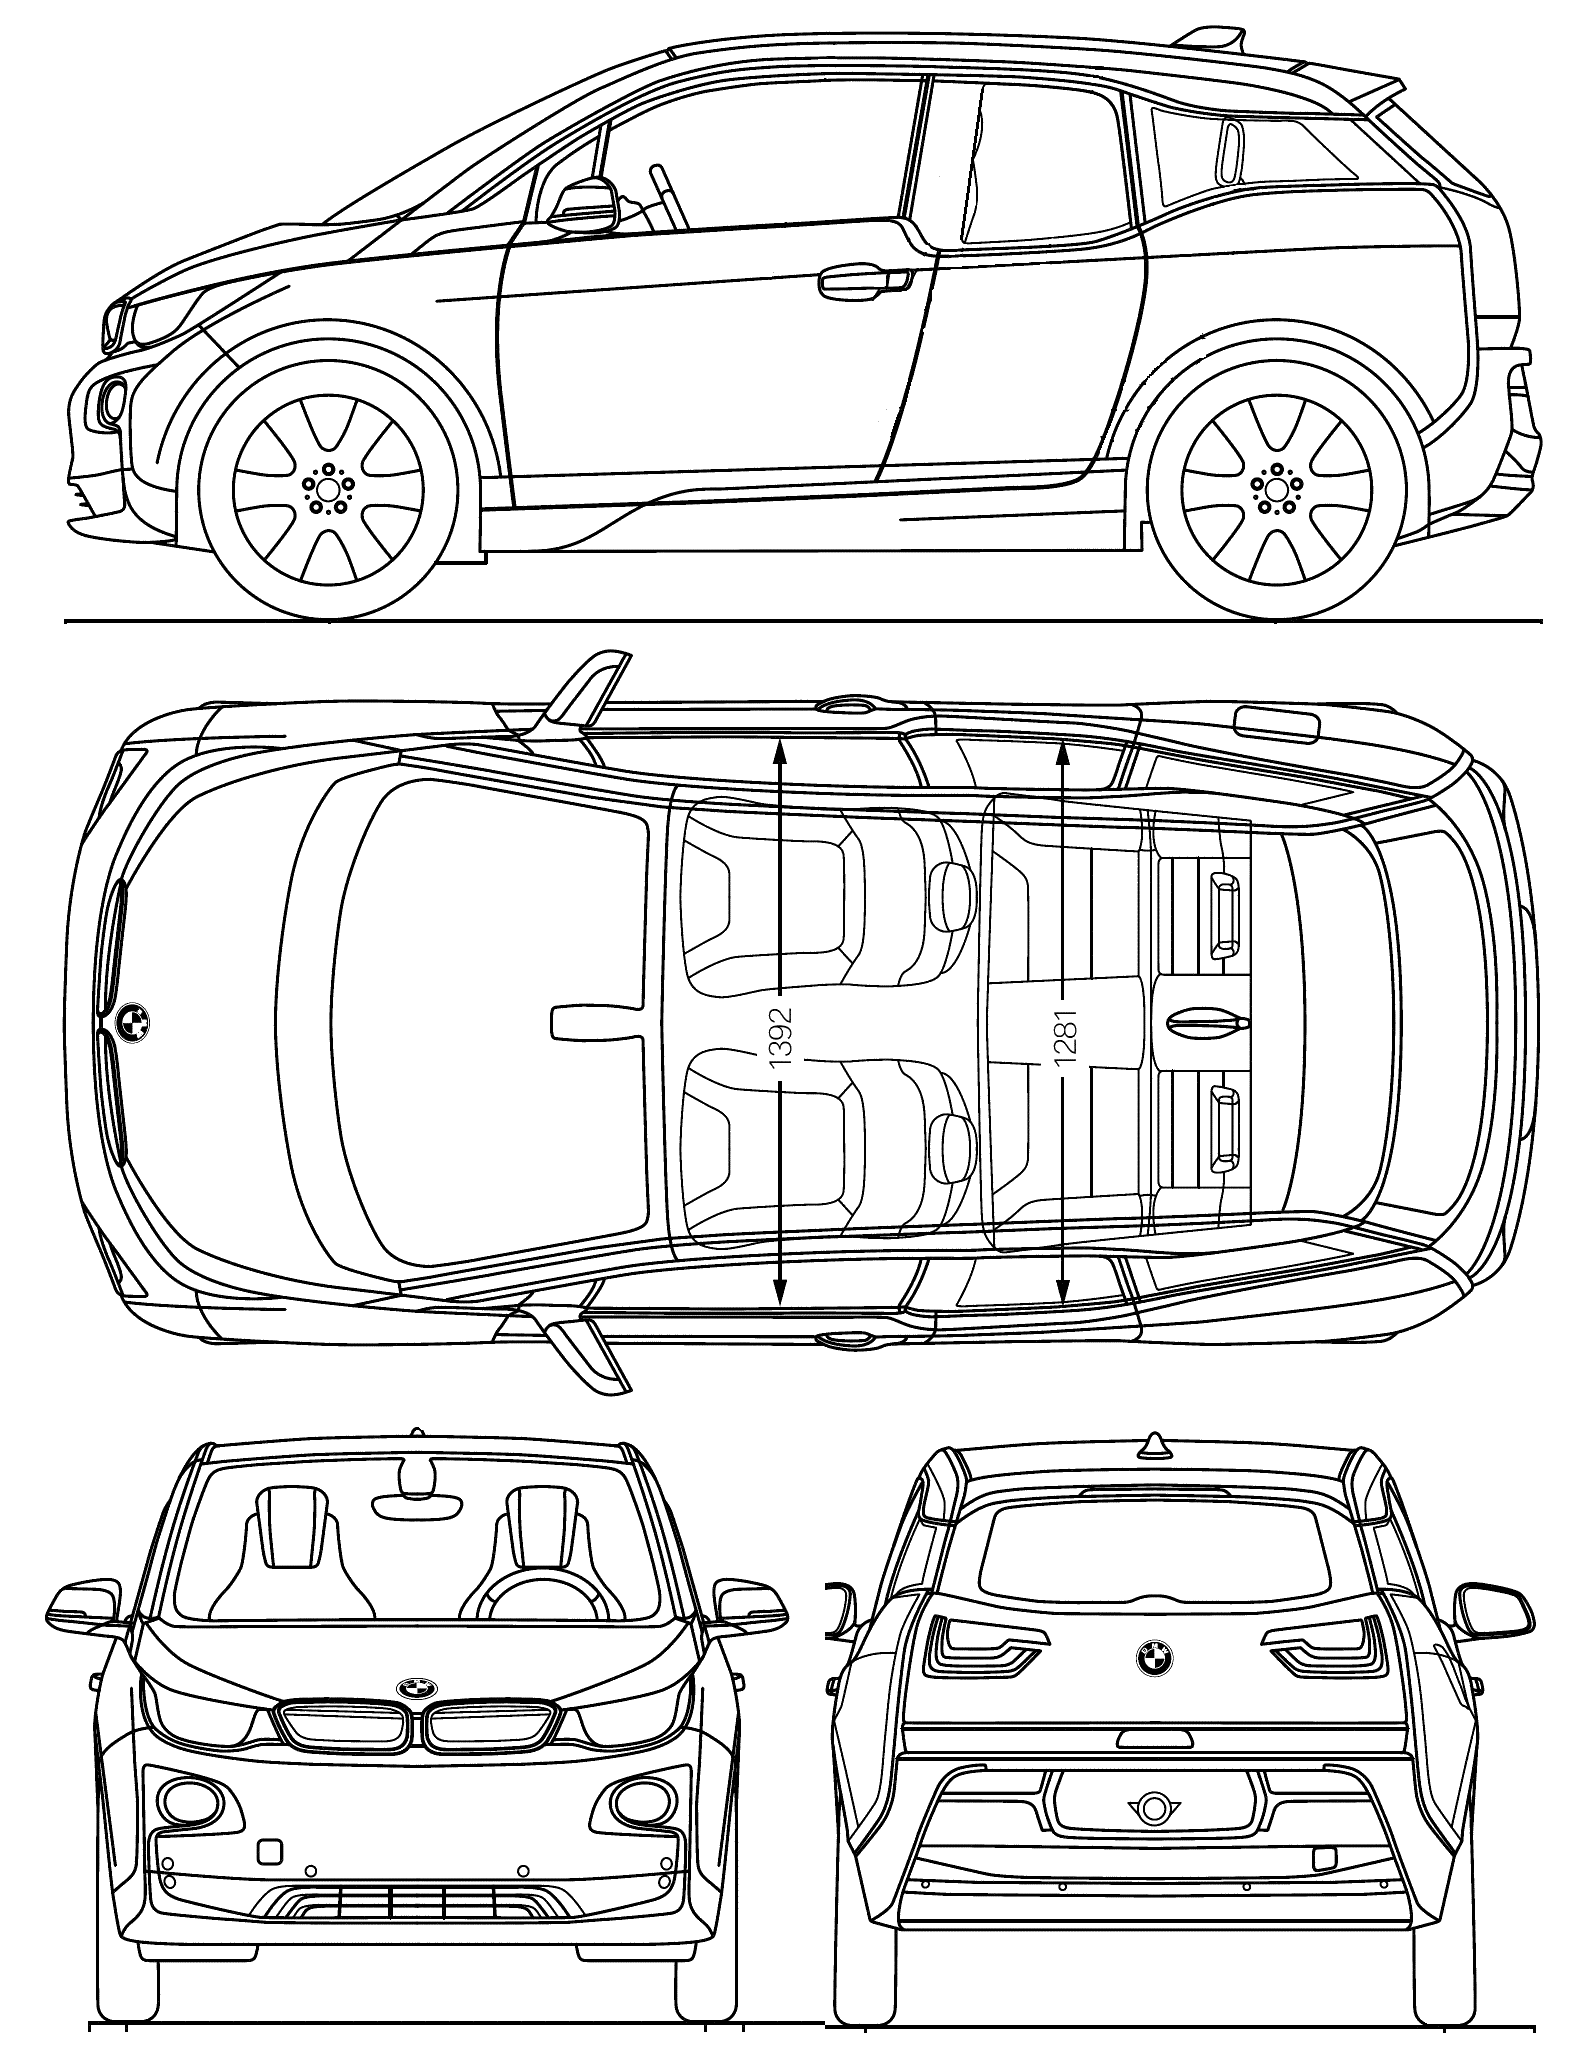 Cool Coloring Page additionally Printable Cute Coloring Pages For Preschoolers 11plq besides 567357 together with Bmw I3 as well 1765775. on race car coloring pages